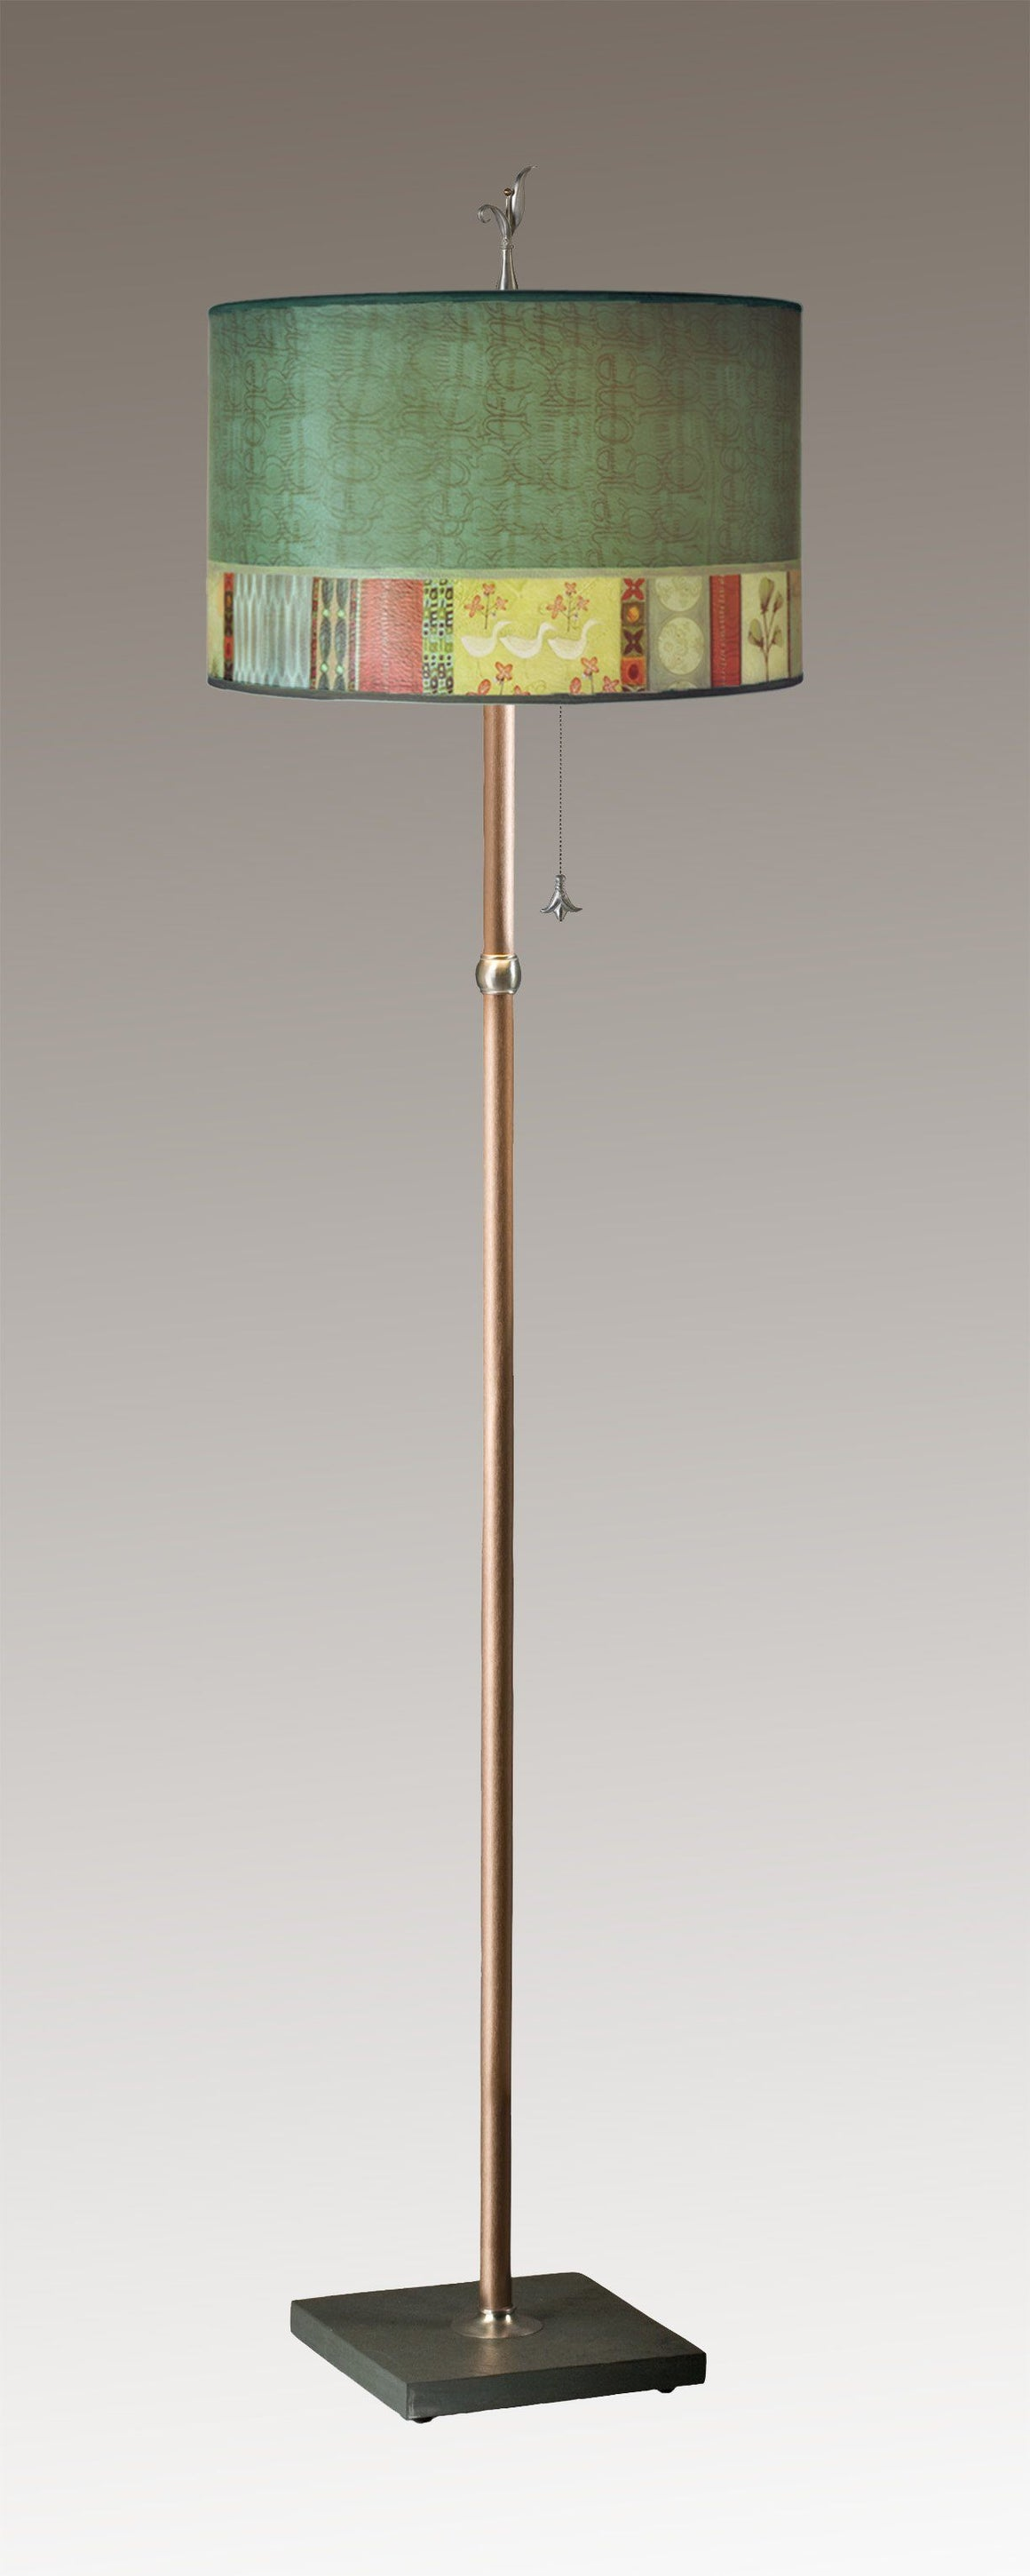 Copper Floor Lamp on Vermont Slate with Large Drum Lampshade in Melody in Jade